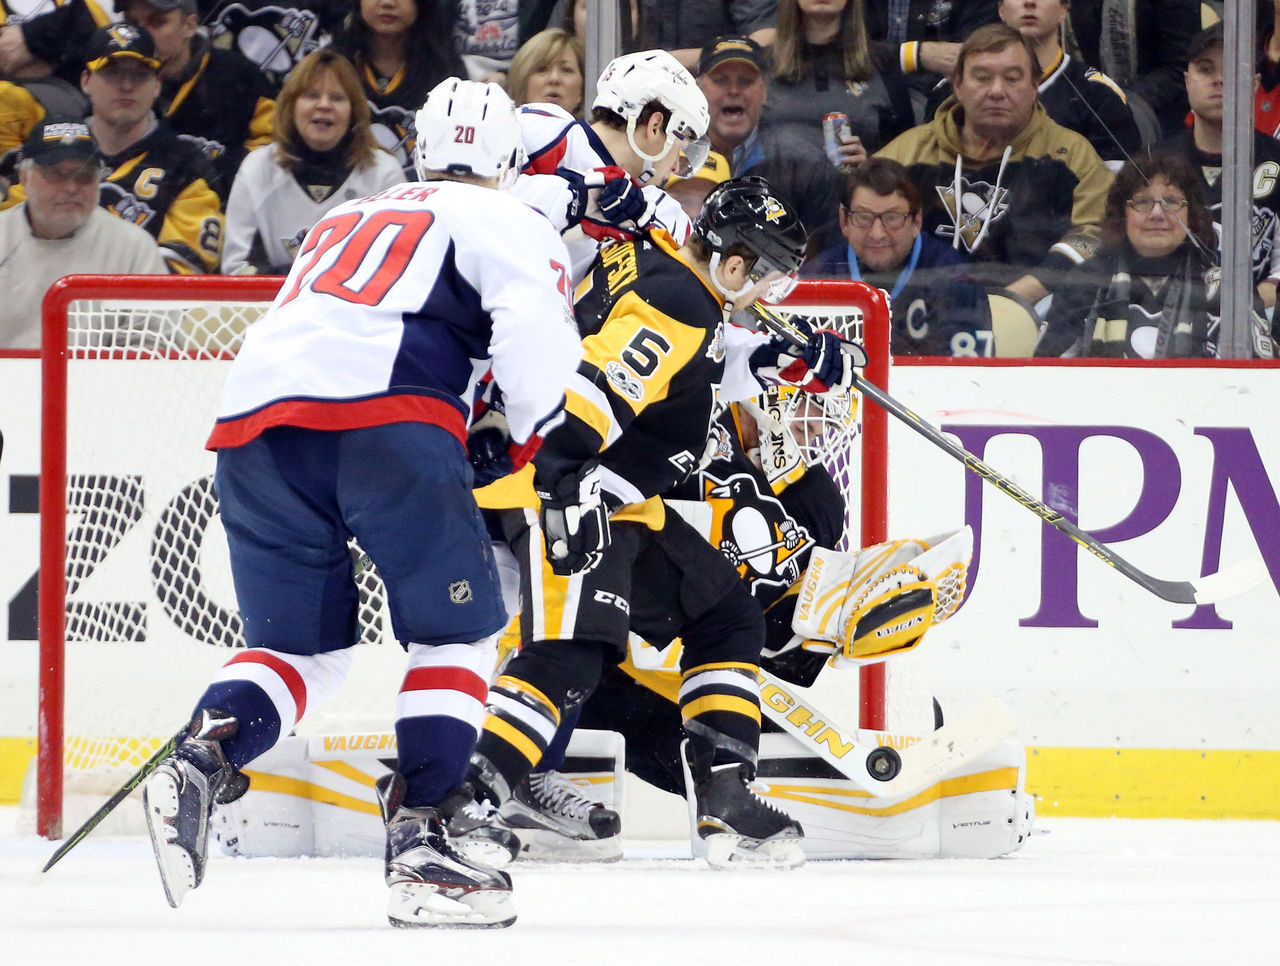 Cropped 2017 01 17t035344z 645832634 nocid rtrmadp 3 nhl washington capitals at pittsburgh penguins